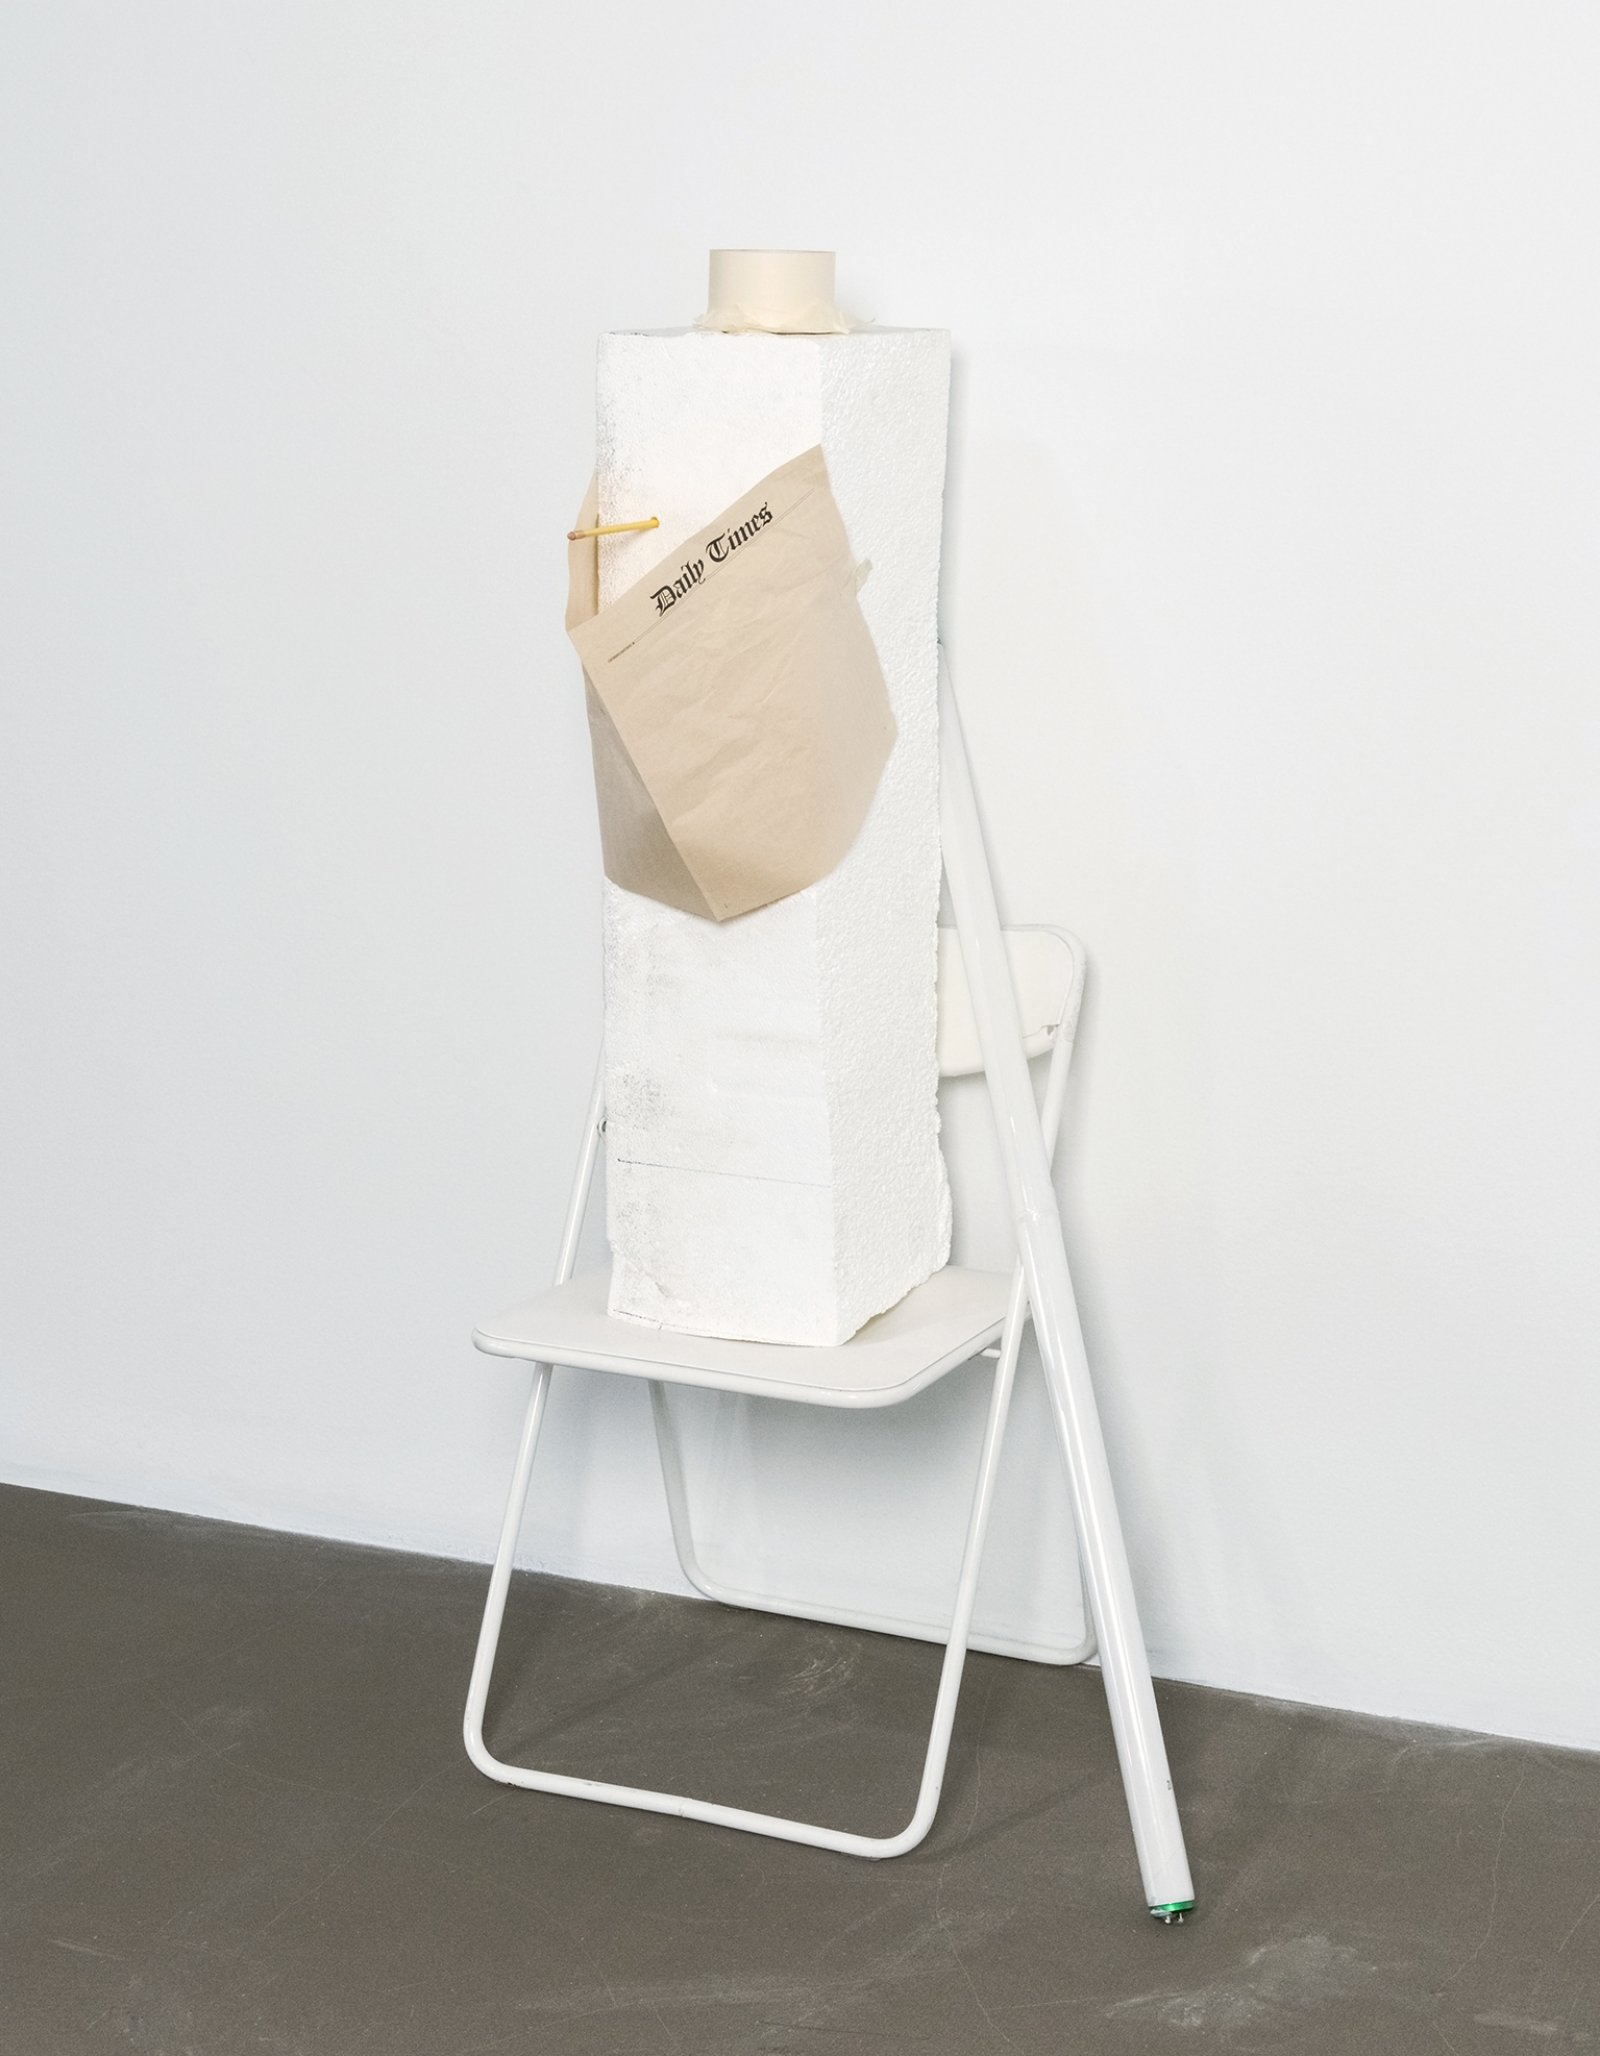 Geoffrey Farmer,Iam by nature one and also many, dividing the single me into many, and even opposing them as great and small, light and dark, and in ten thousand other ways (I know what it is like to fall), 2006–2008,white chair, styrofoam, newspaper, tape, pencil, fluorescent bulb, 58 x 21 x 18in. (147 x 53 x 46 cm)